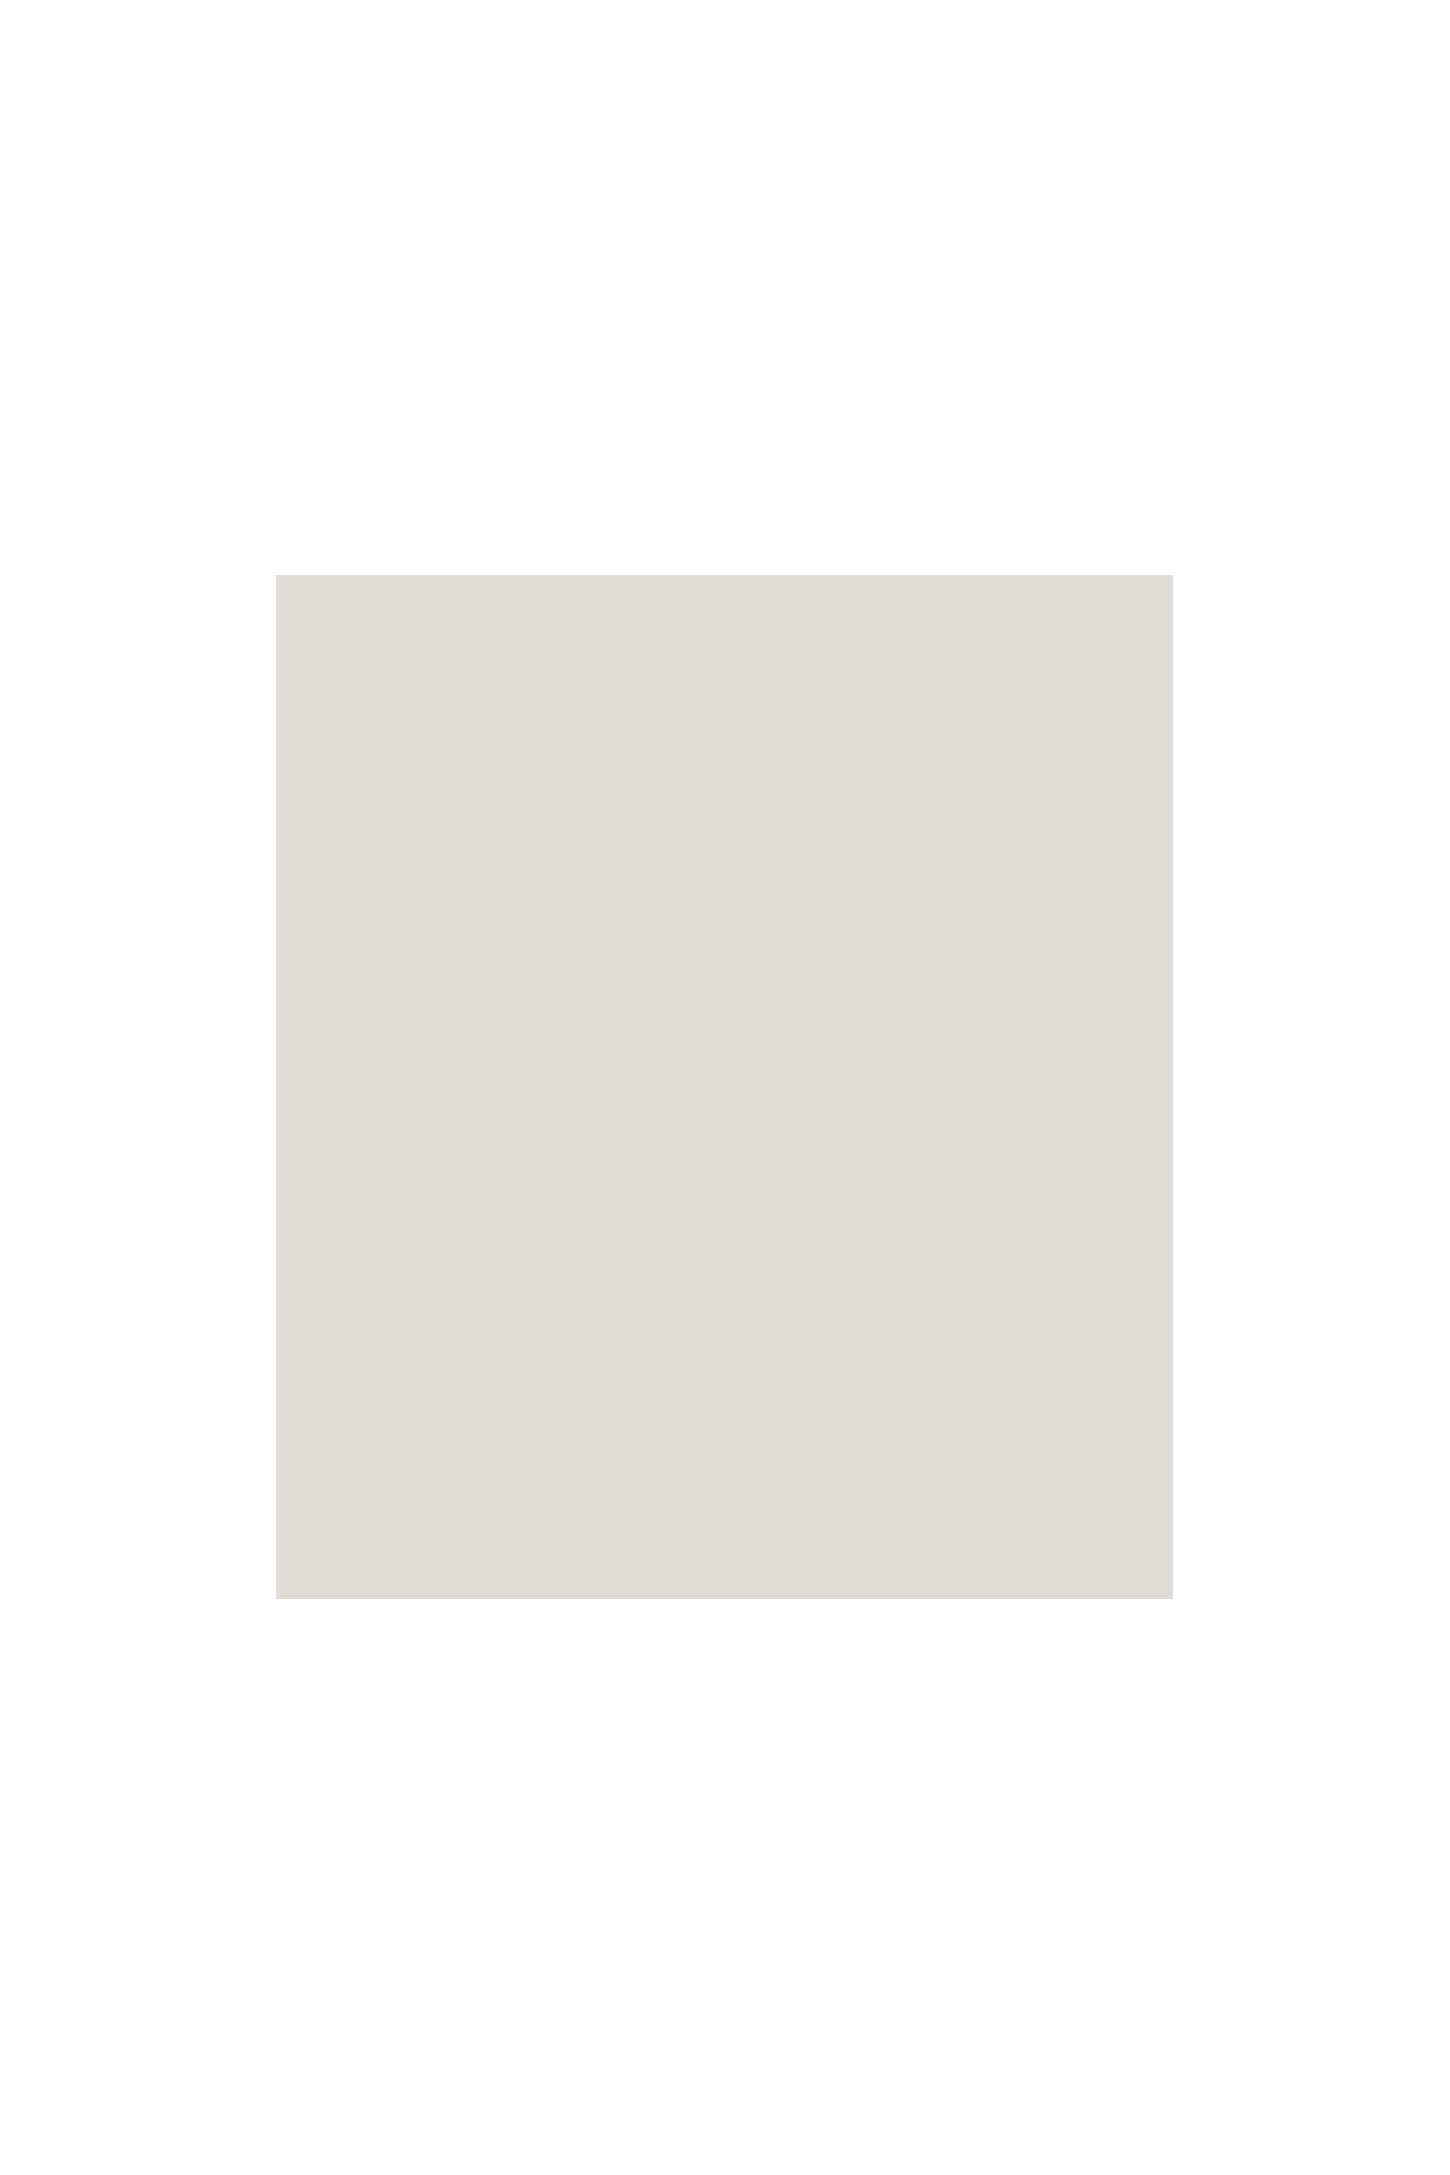 Eu'Genia Shea Everyday Shea Butter